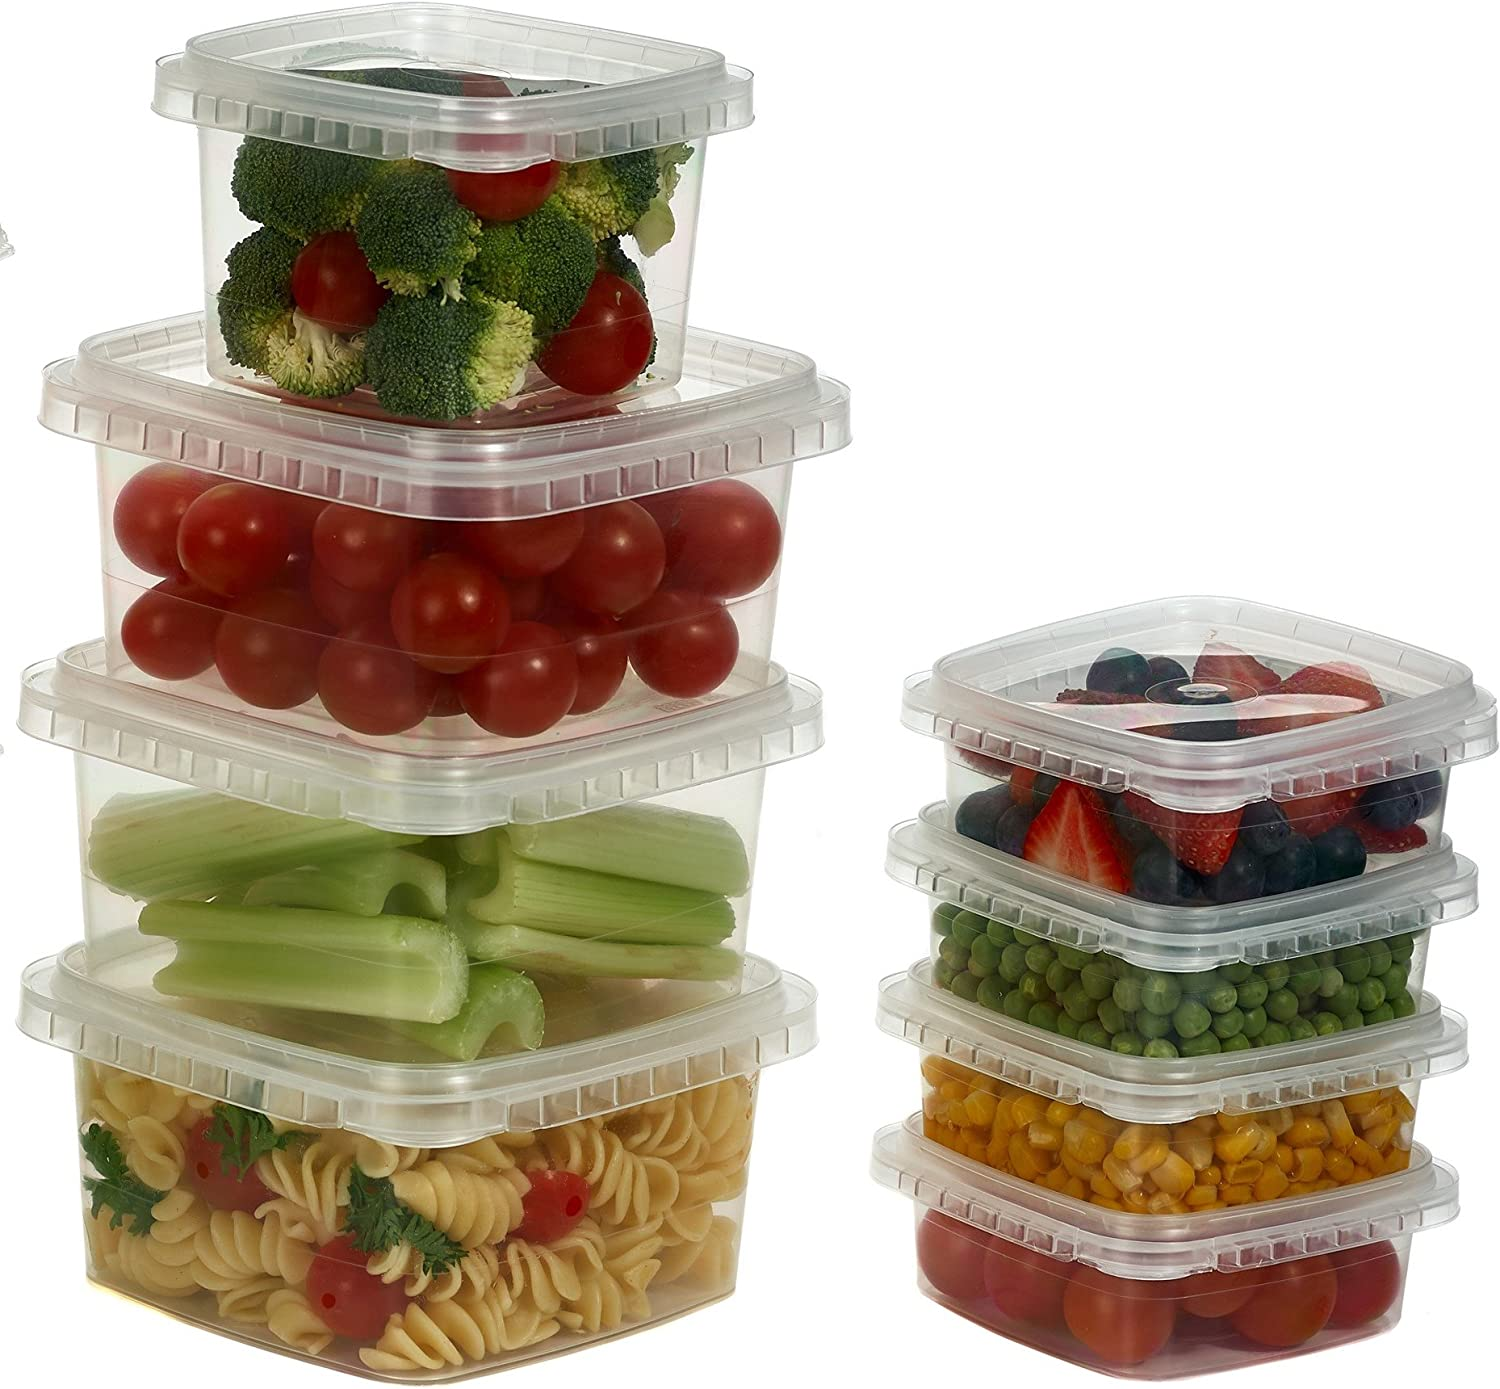 32 oz. Clear Deli Food Storage Containers With Lids Tamper evident system easy stackable mise en place and space saver shape Restaurant Take Out/Freezer microwave and dishwasher safe - 25 sets